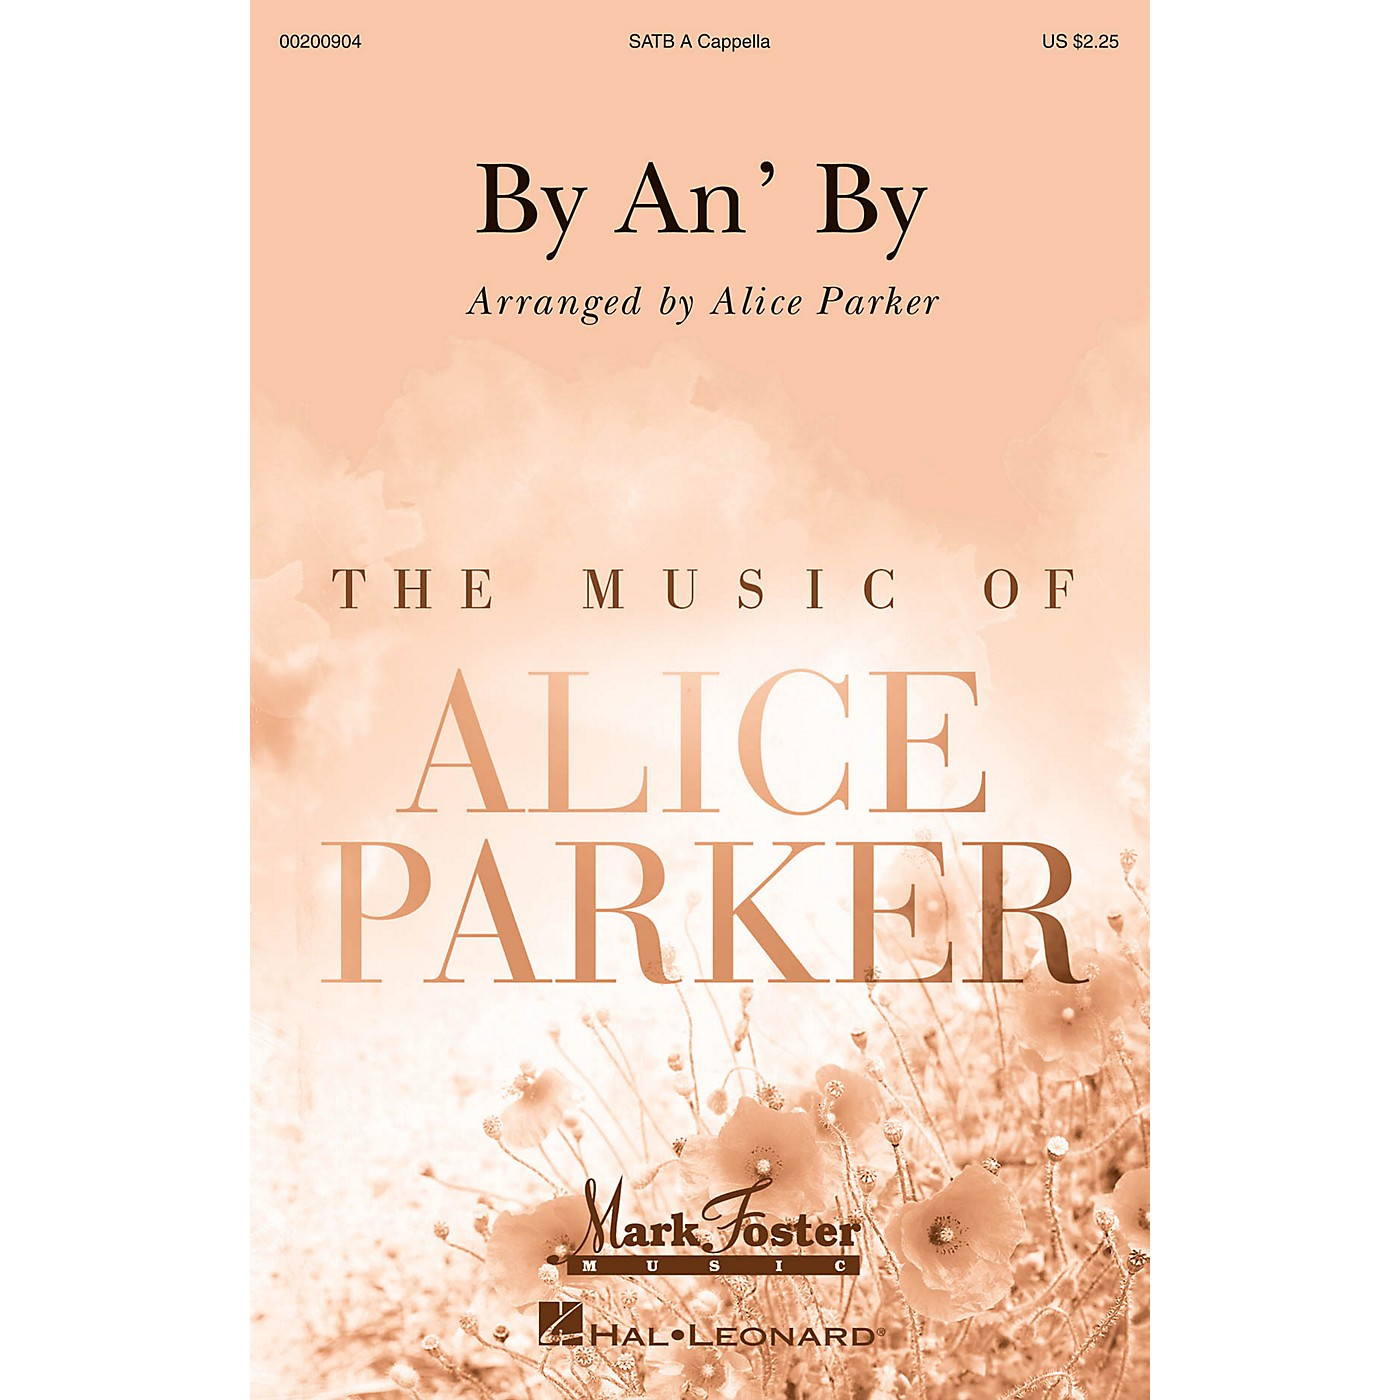 Mark Foster By an' By (Mark Foster) SATB a cappella arranged by Alice Parker thumbnail